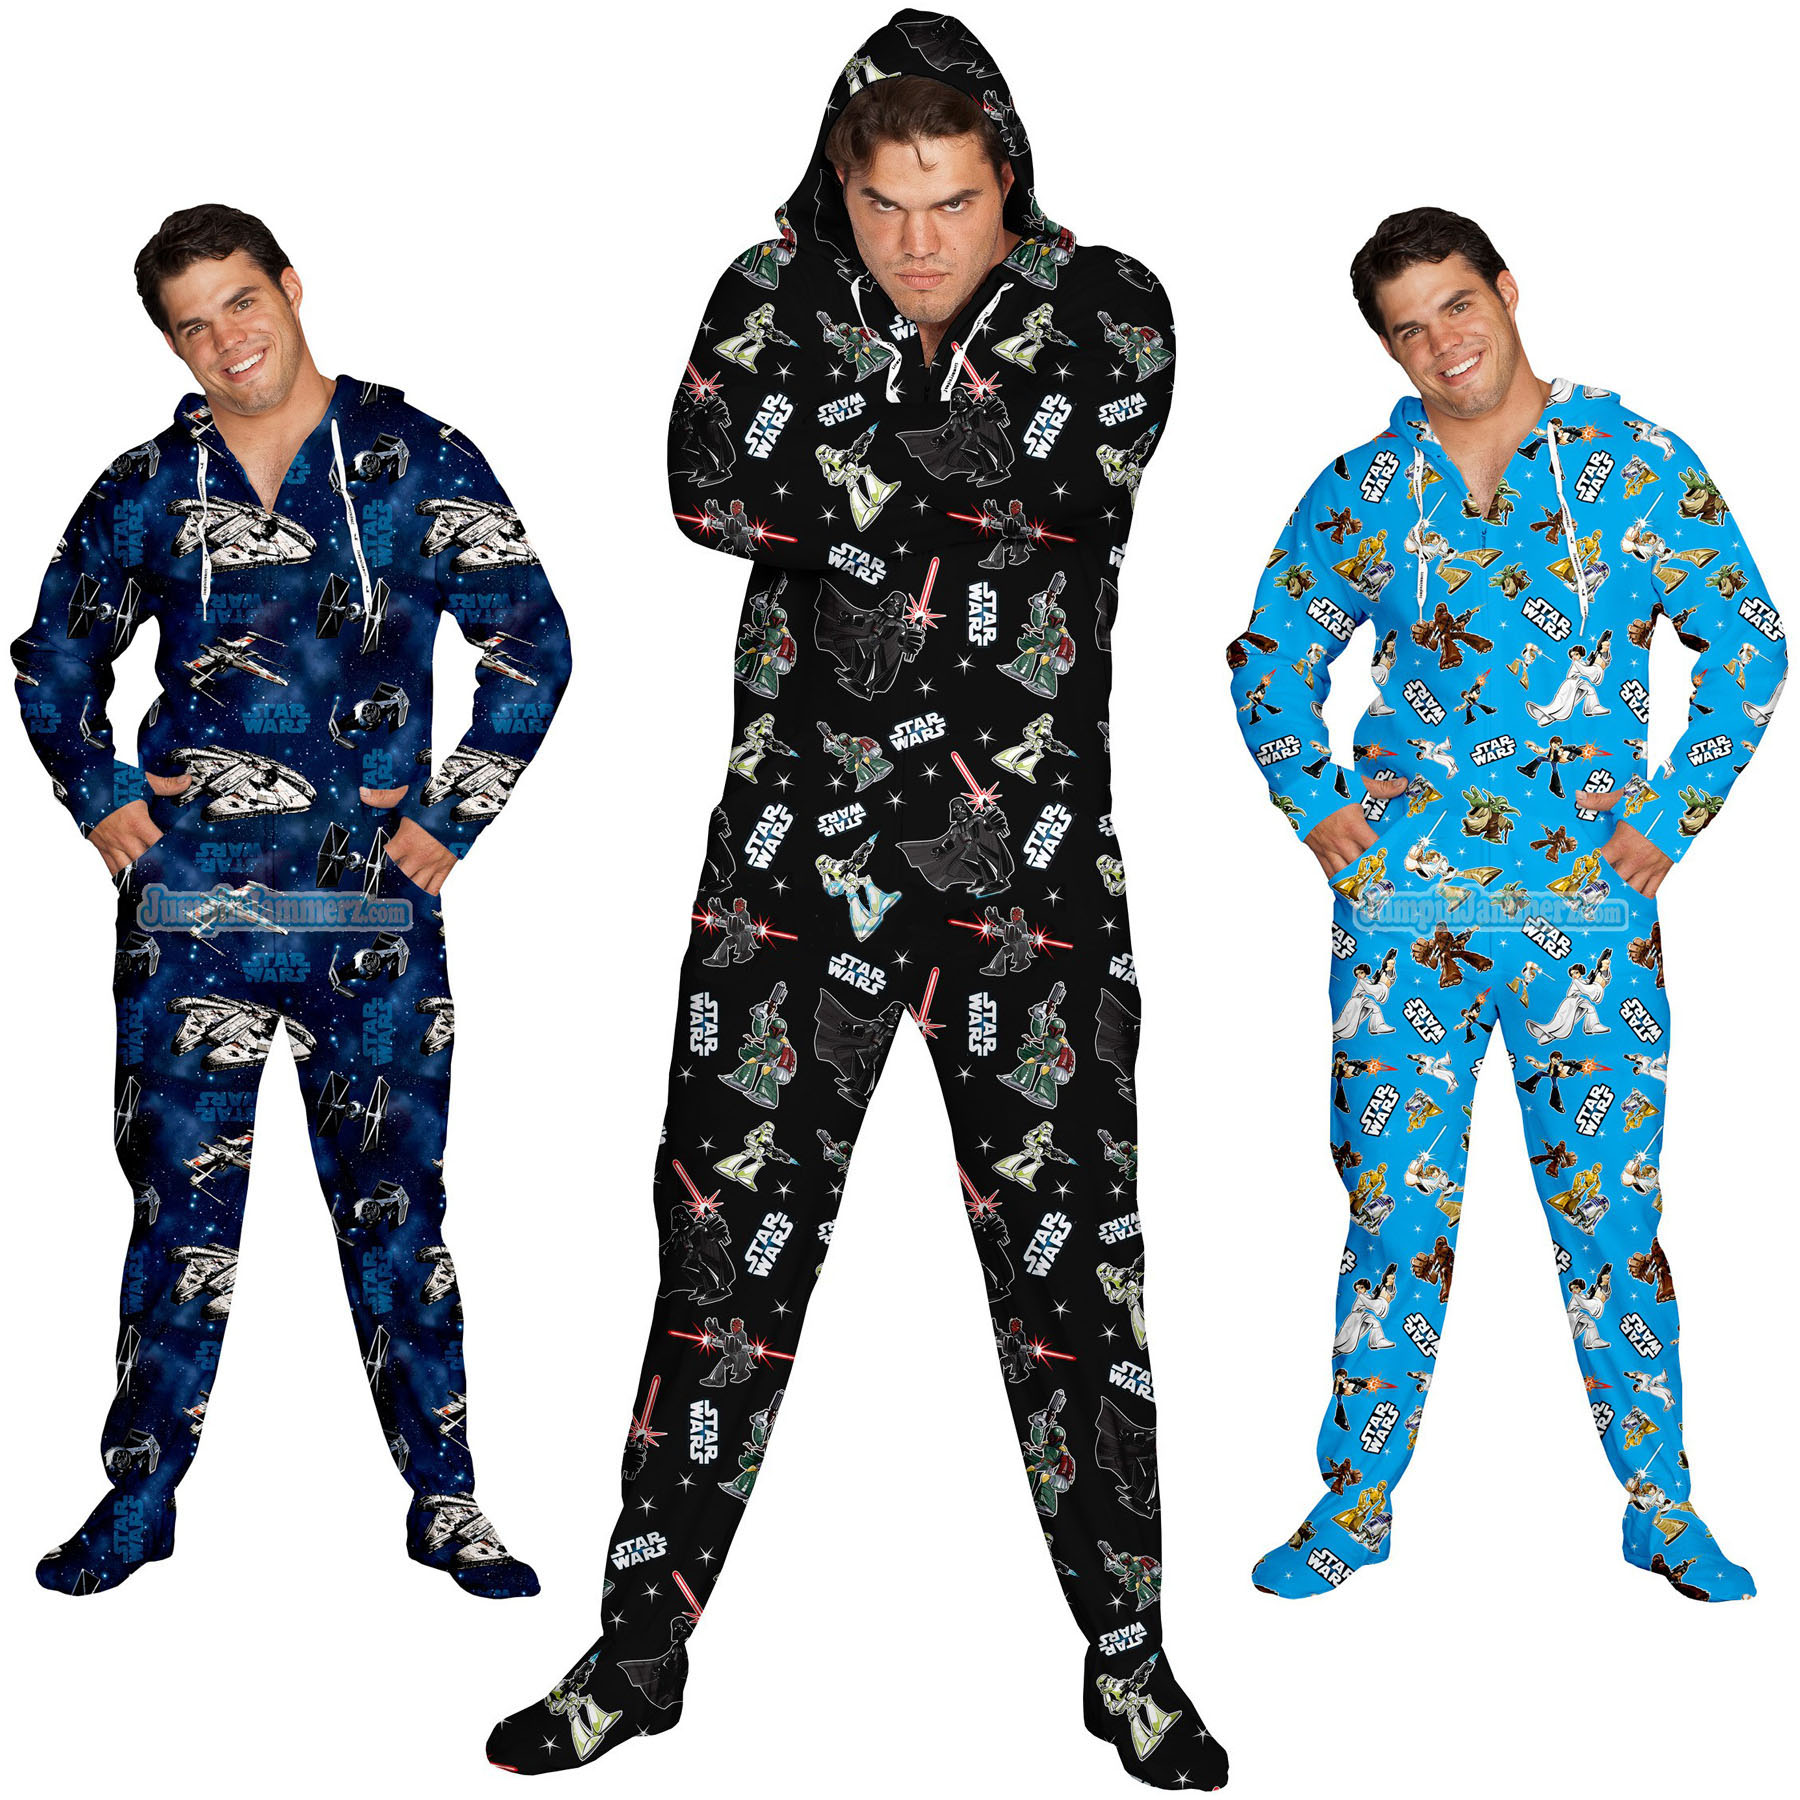 526d08494e1f Star Wars Footed Pajamas